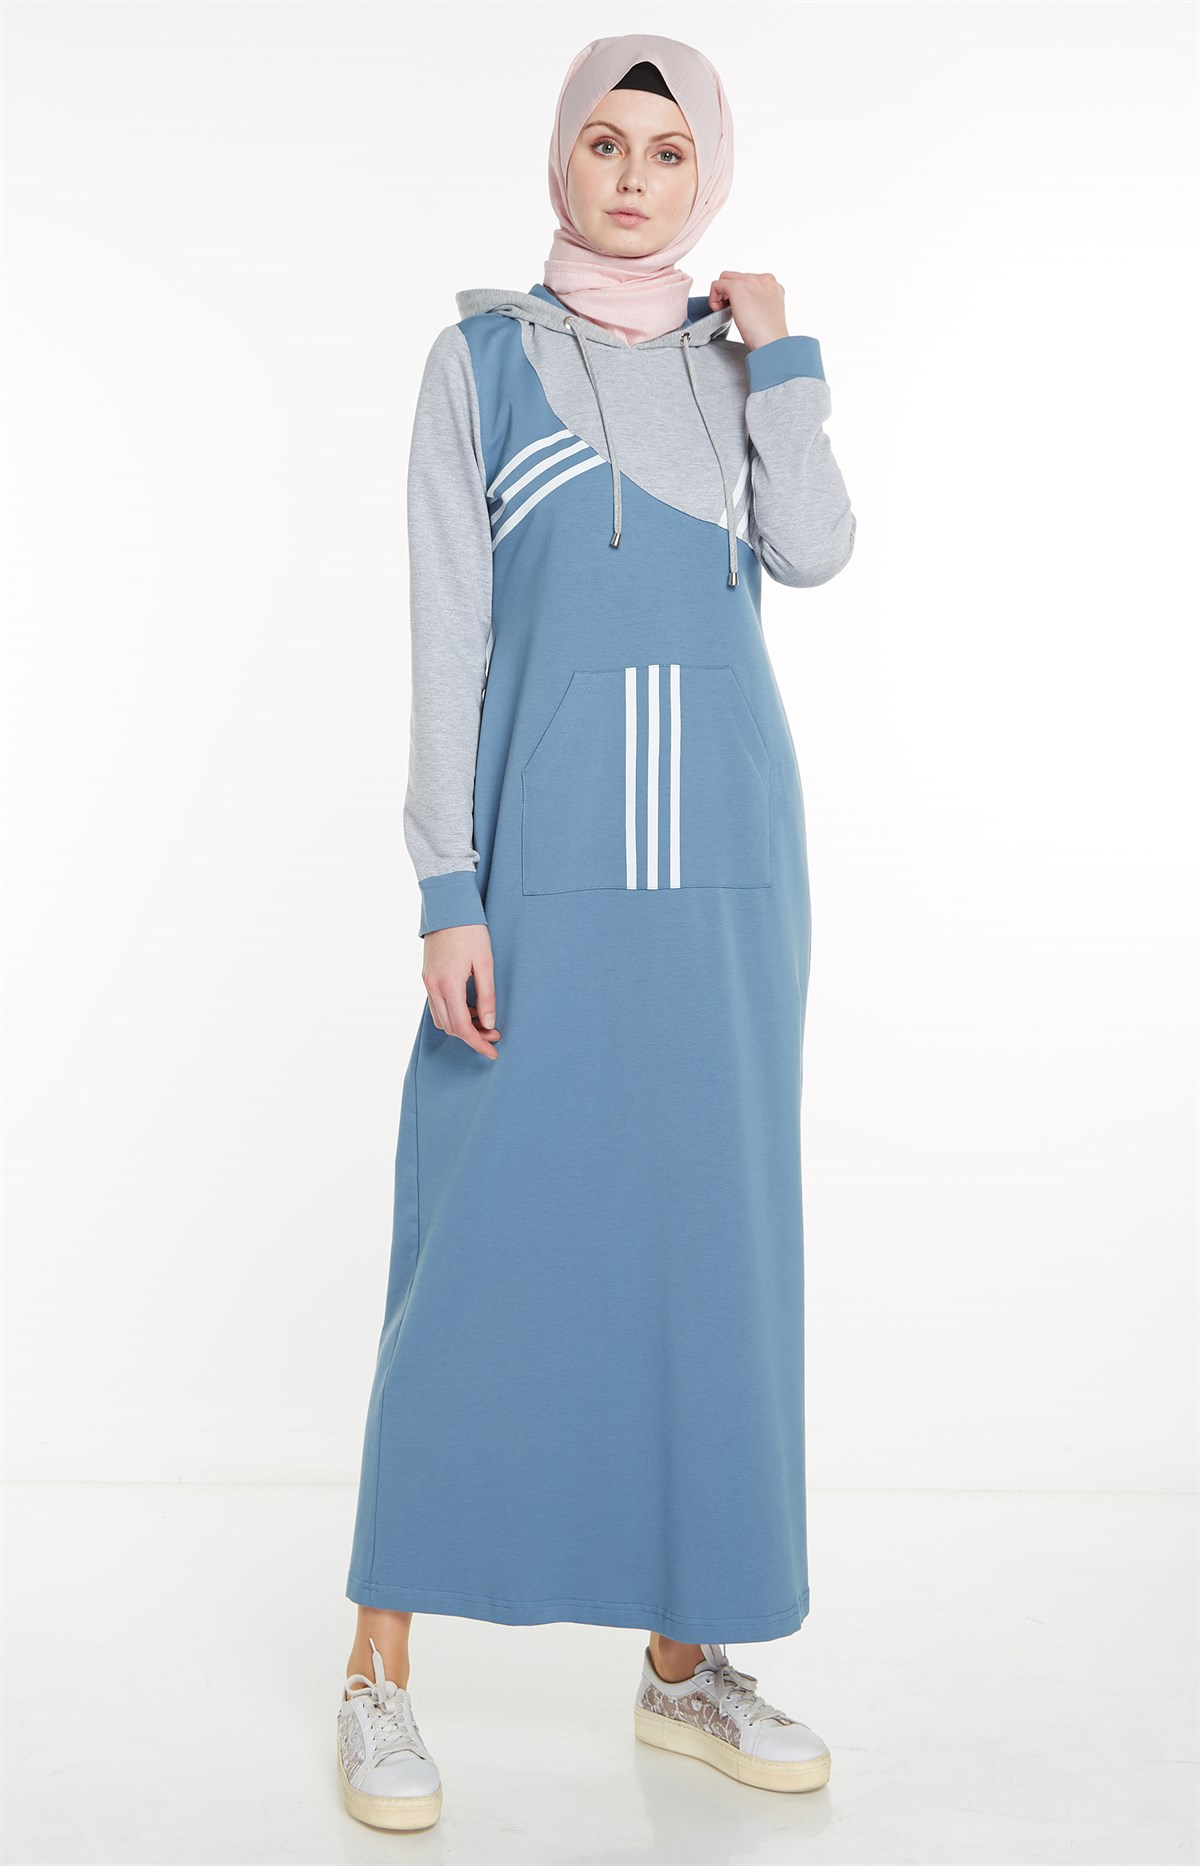 Nihan Hooded Cotton Dress-Turquoise X4016